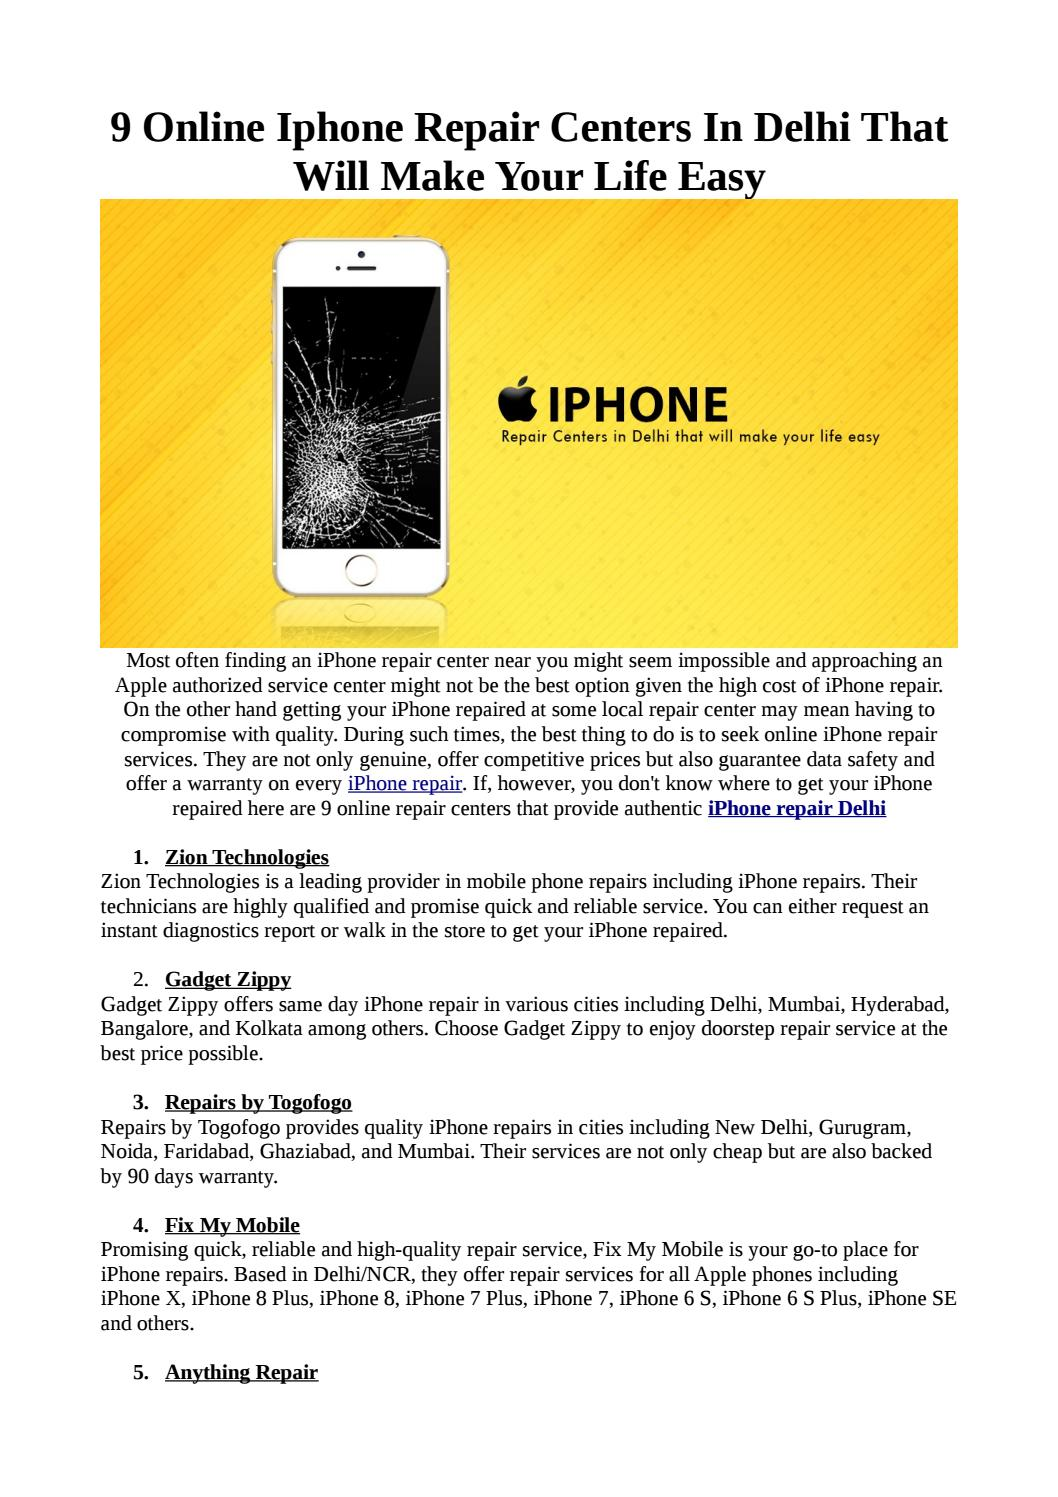 9 Online Iphone Repair Centers In Delhi That Will Make Your Life Easy Repairs Togofogo By Repairgreen By Togofogo Issuu